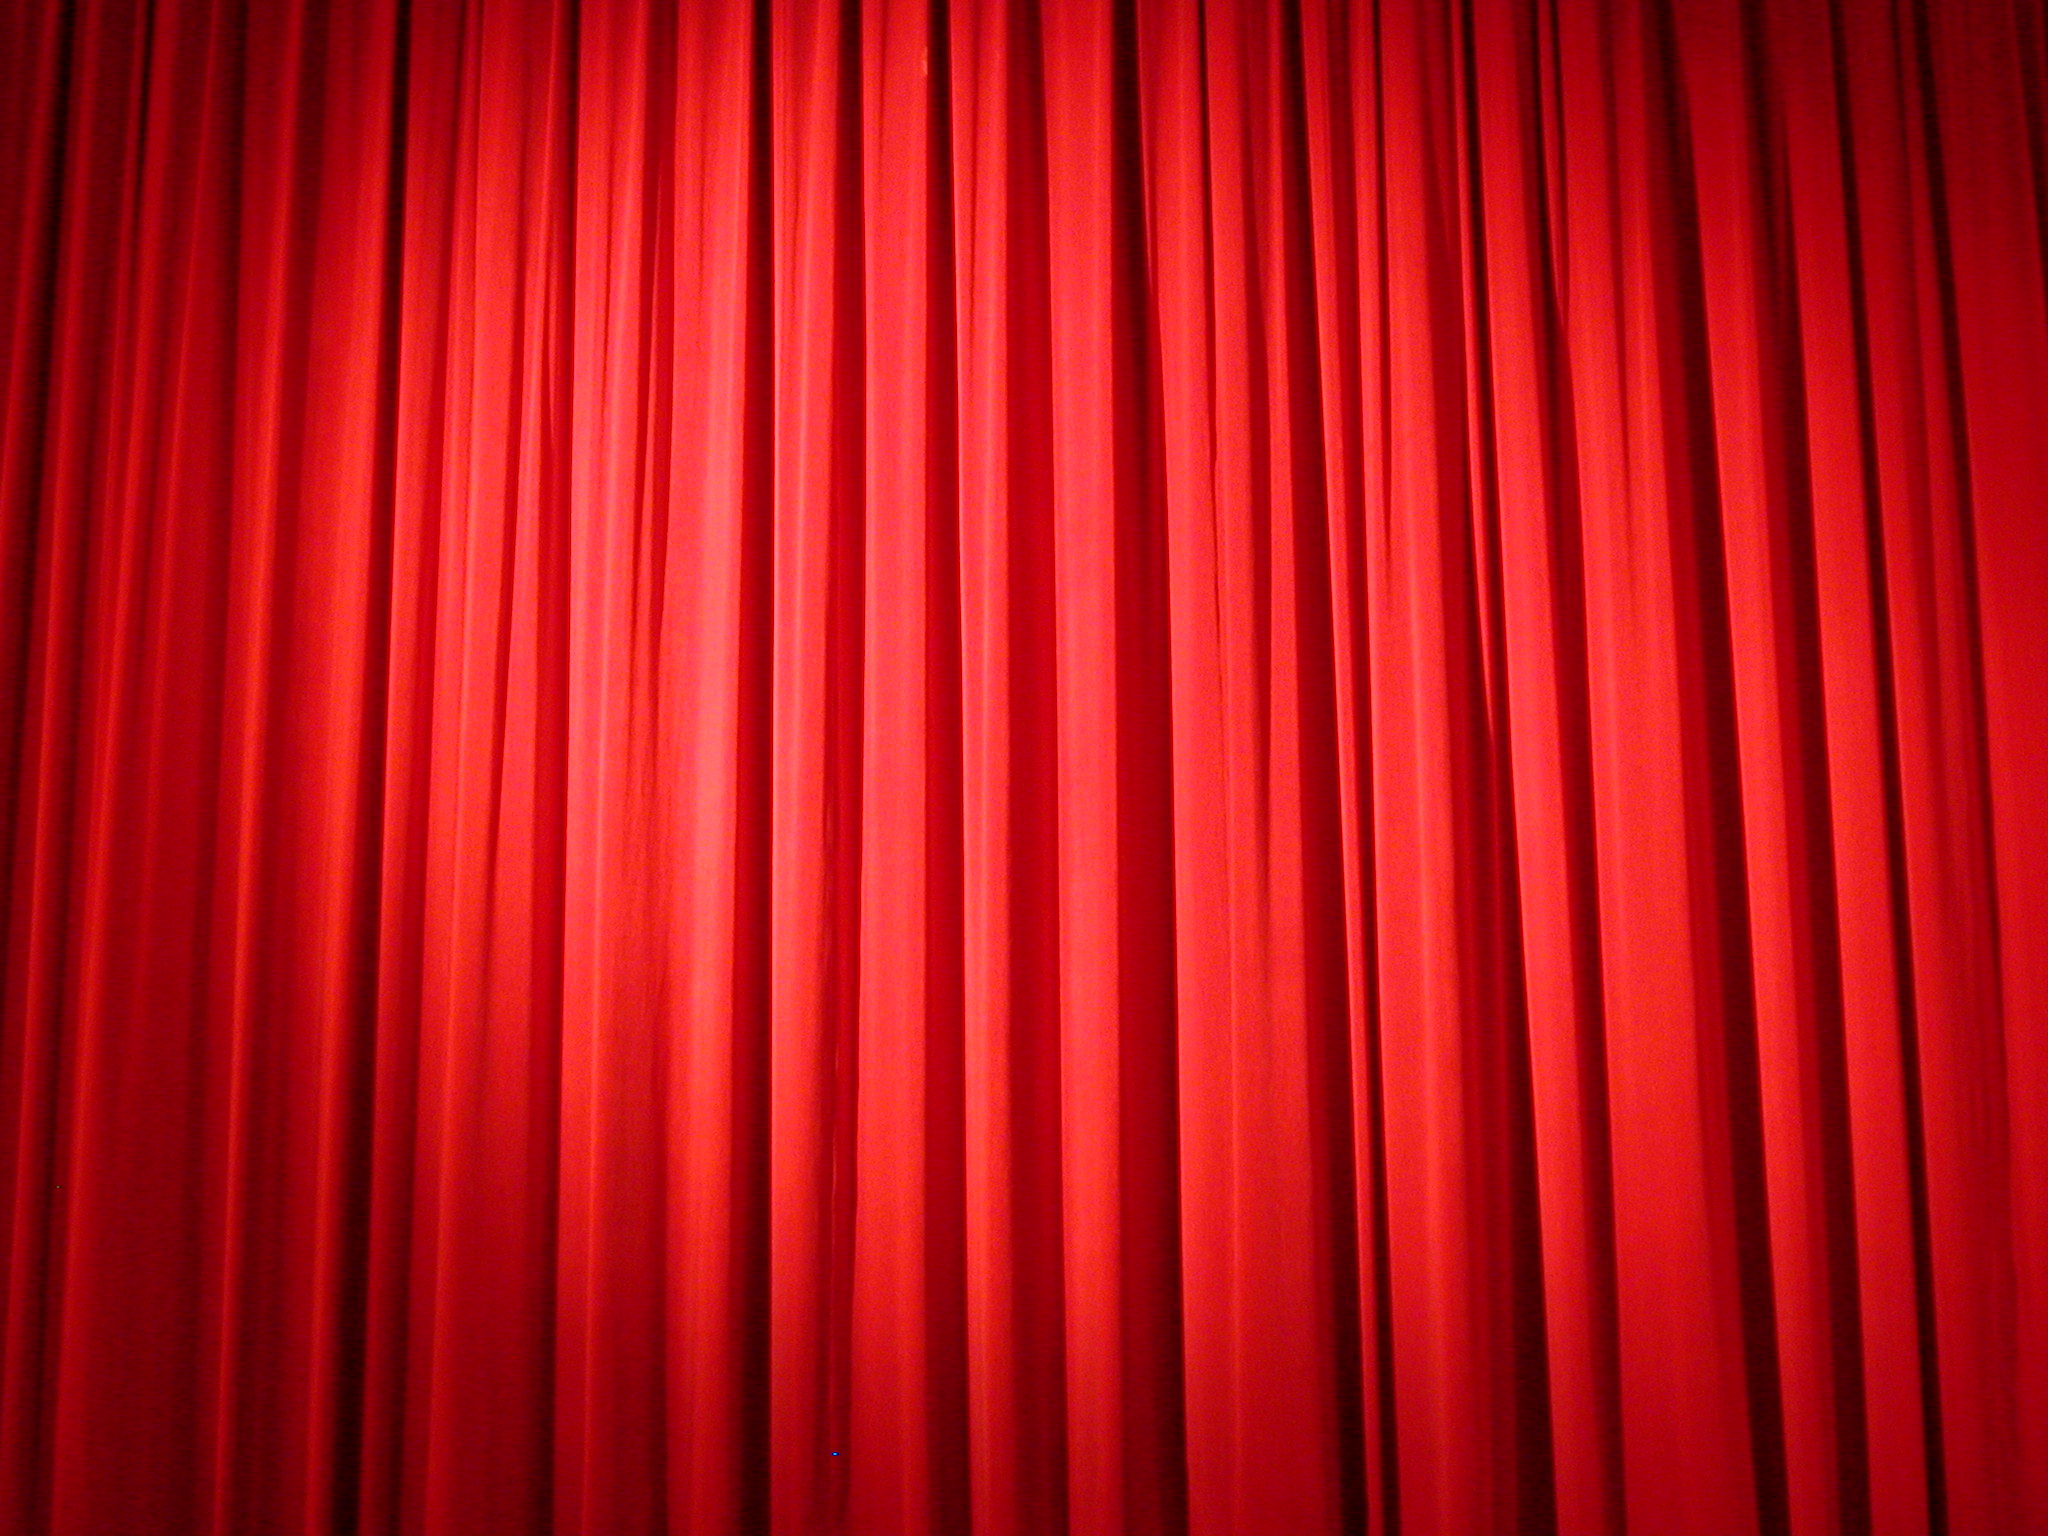 Back gt gallery for gt real open stage curtains - Gallery Of Real Red Stage Curtain